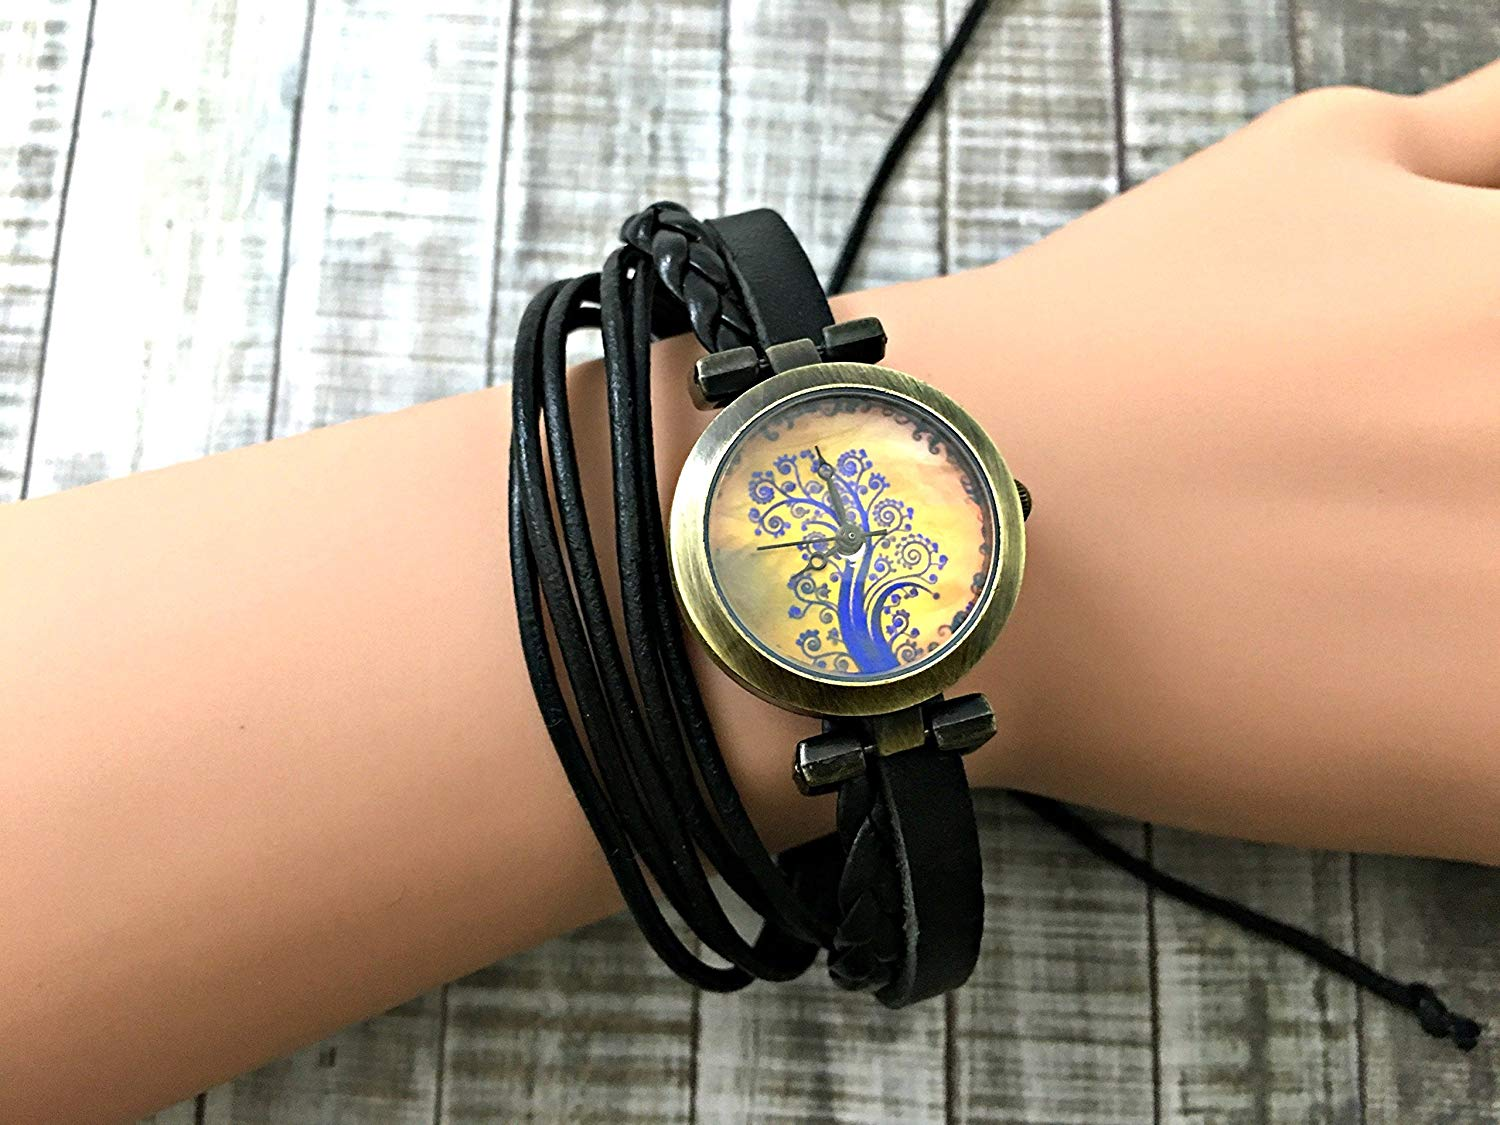 Tree Wrap Bracelet Leather Watch, Leather Wrap Bracelet Watch, Leather Wrap Art Watch, Vintage Retro Wrap Bracelet Watch, Wrap Genuine Leather Watch 011